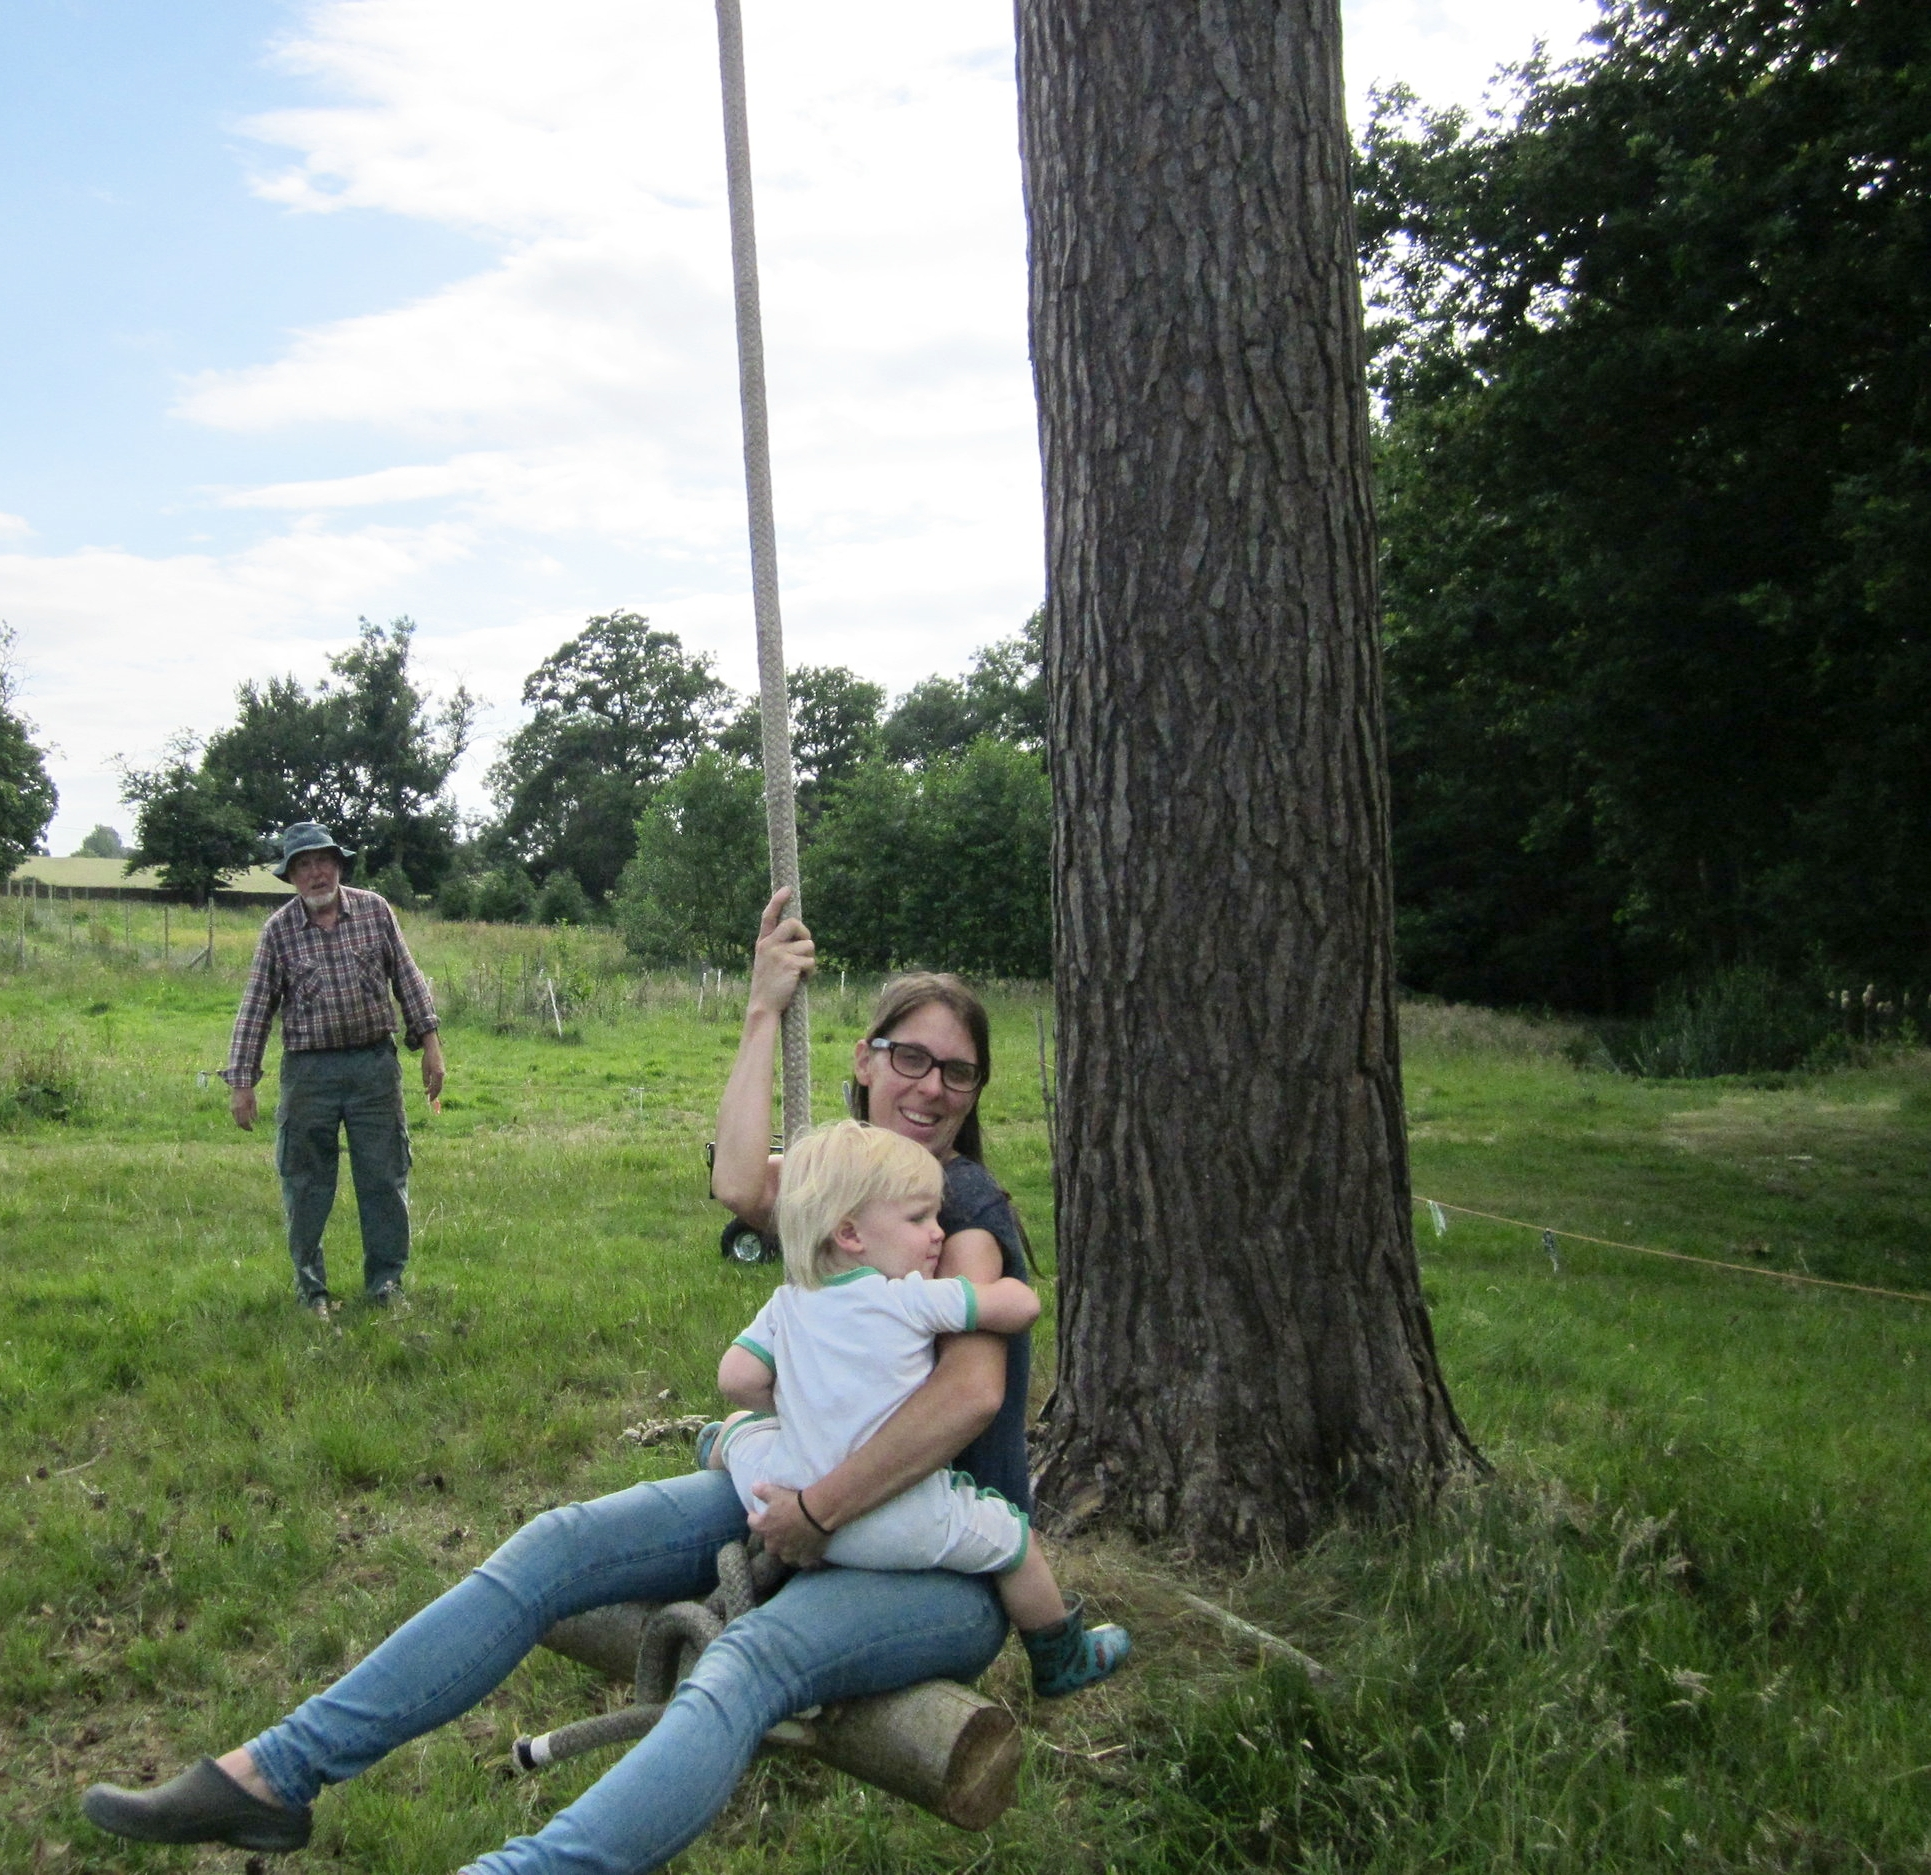 Kate & Dylan swinging from the glamping tree swing